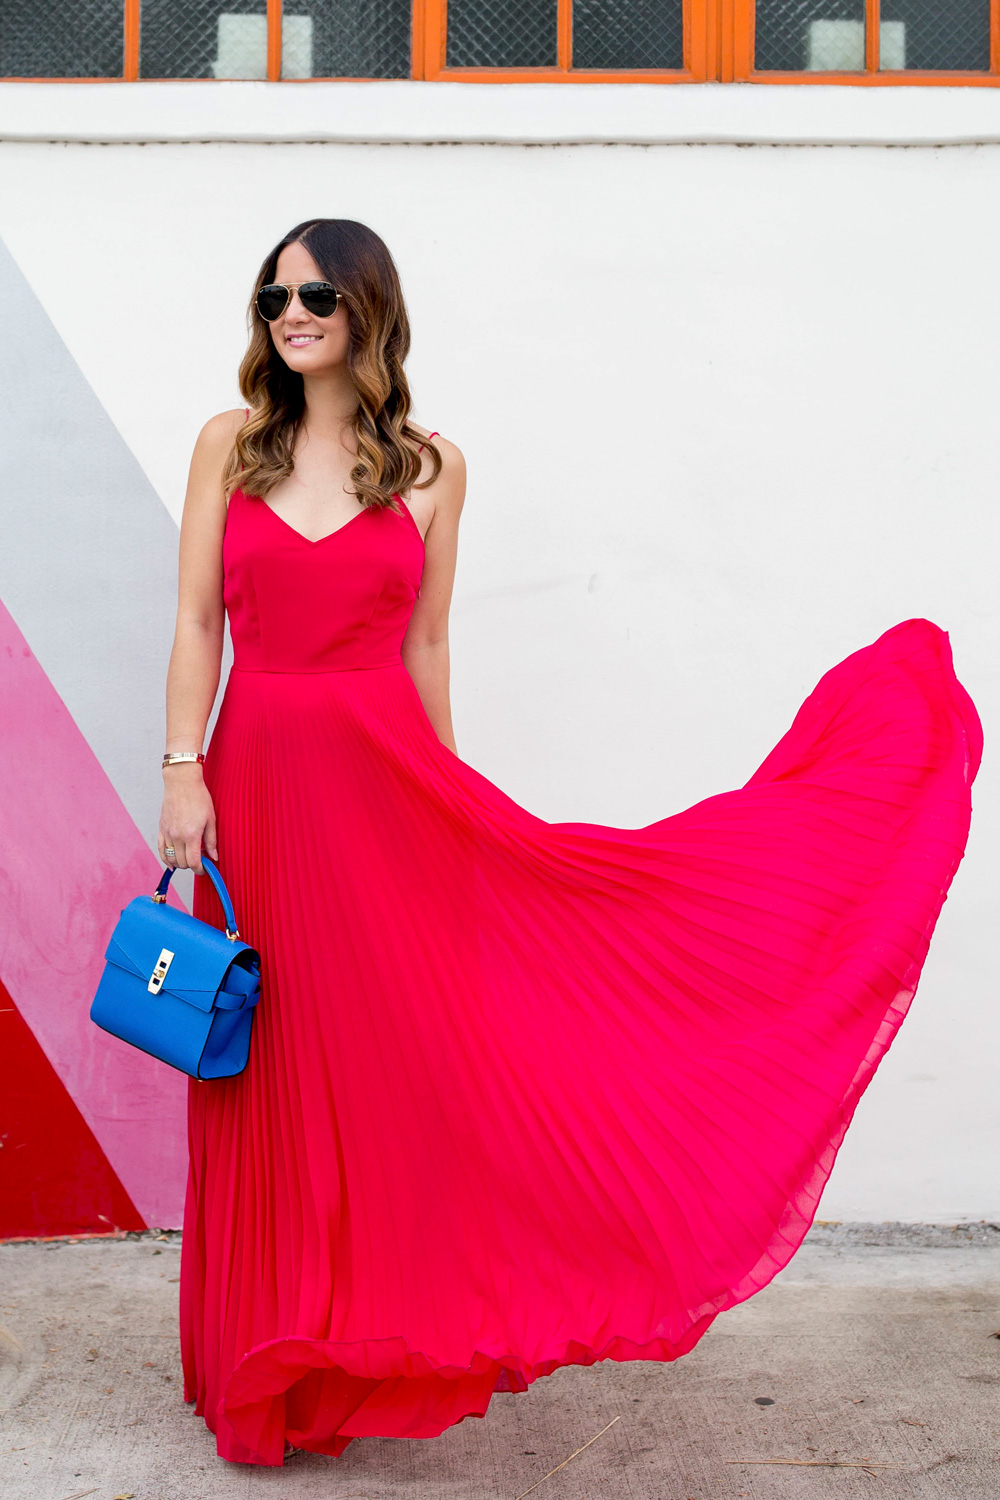 Jennifer Lake Style Charade in a flowing ASOS pink pleated maxi dress, blue Henri Bendel Mini Uptown satchel, at a striped wall in Los Angeles